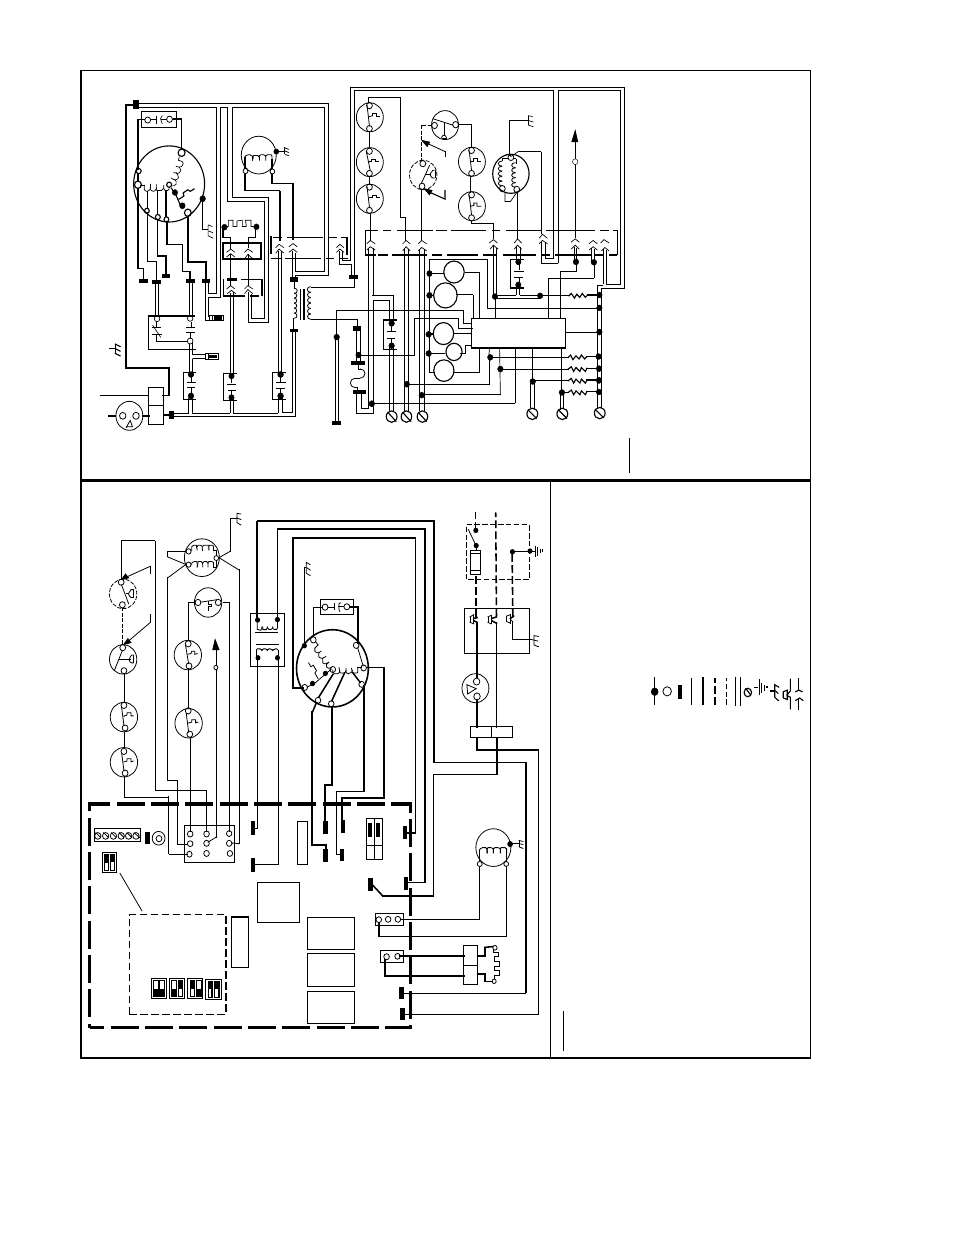 Hs Wiring Diagram Library Field Pressure Switch 12unit Ir Id R B Lw Carrier